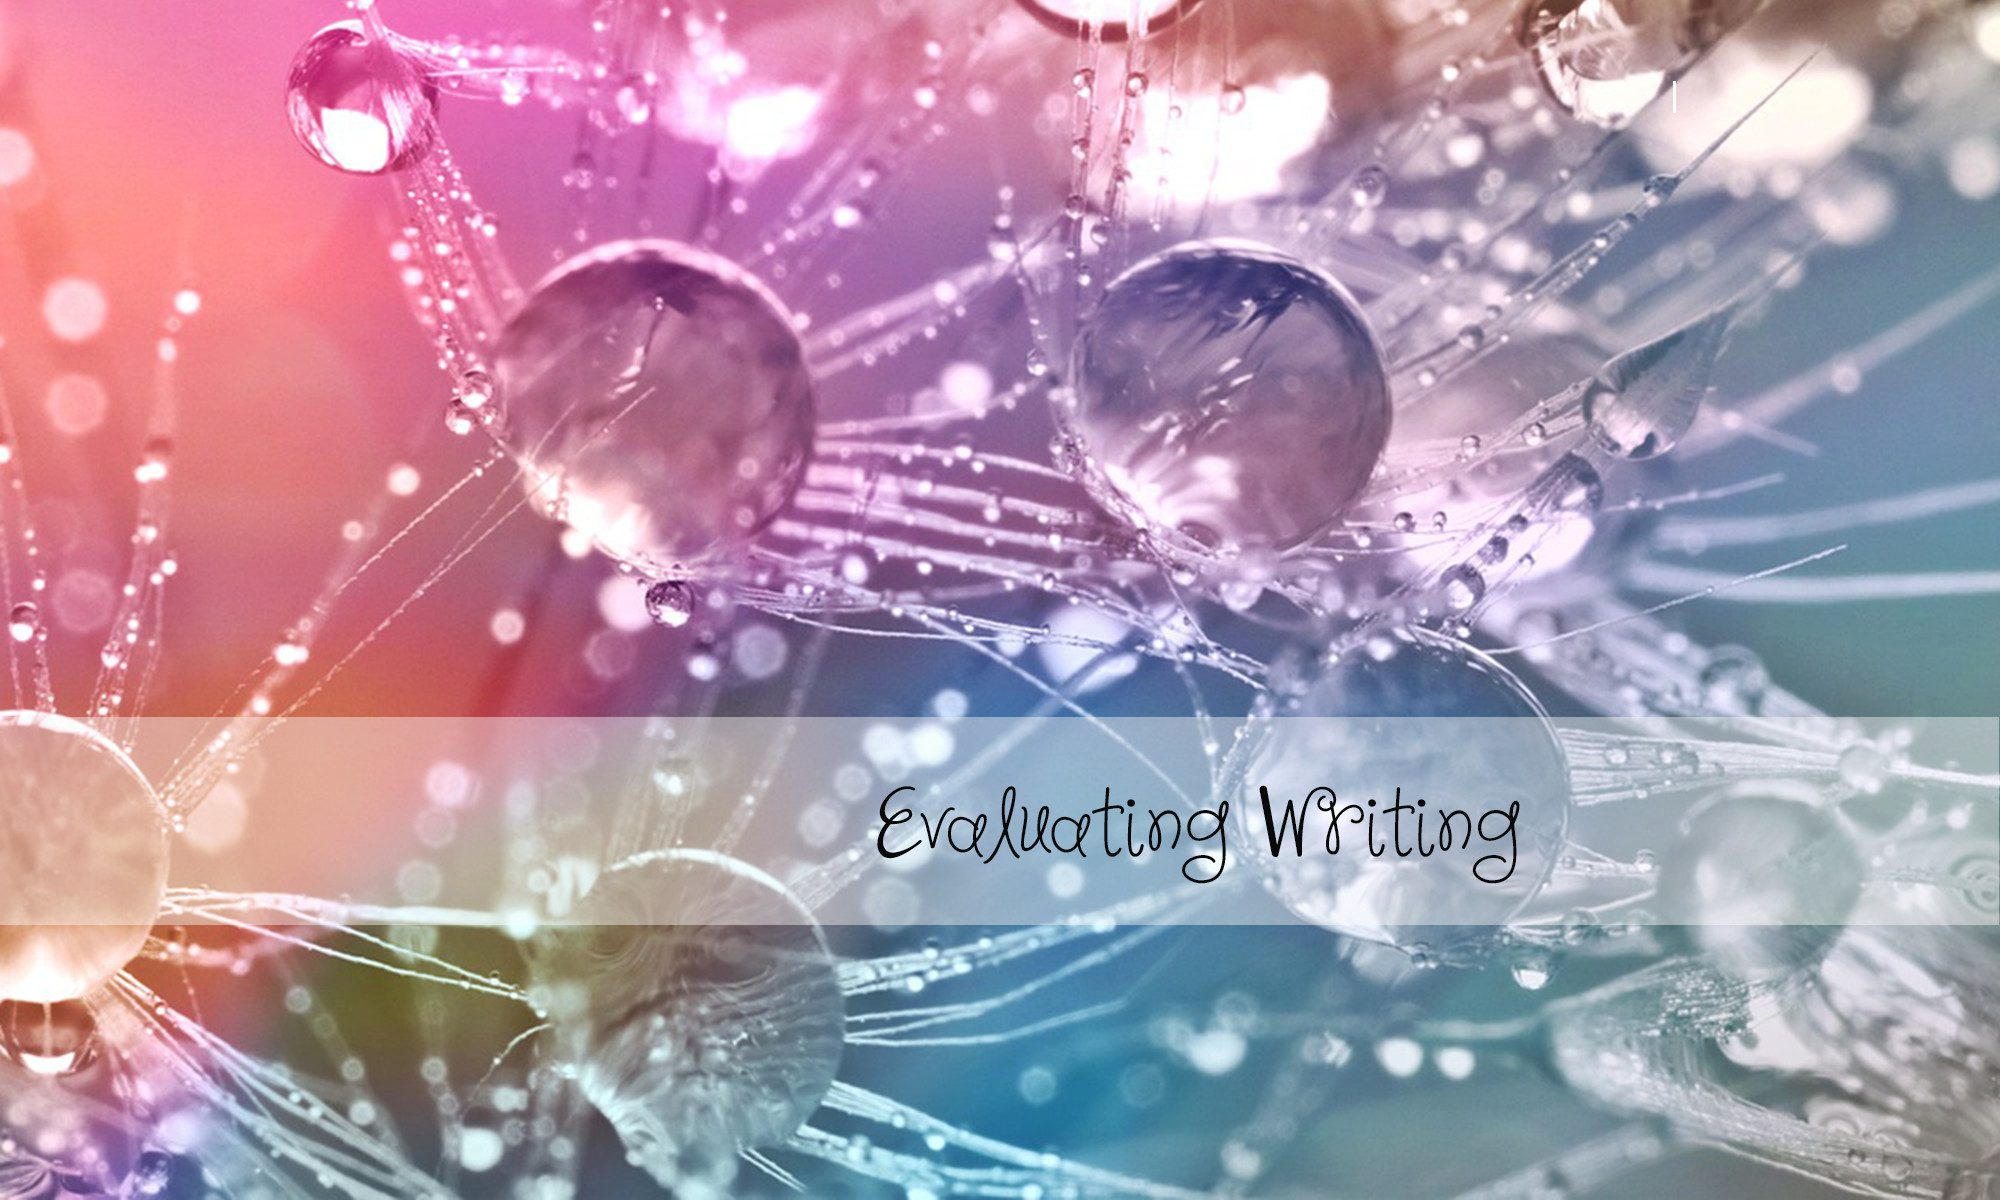 Thursday October 26th Evaluating Writing